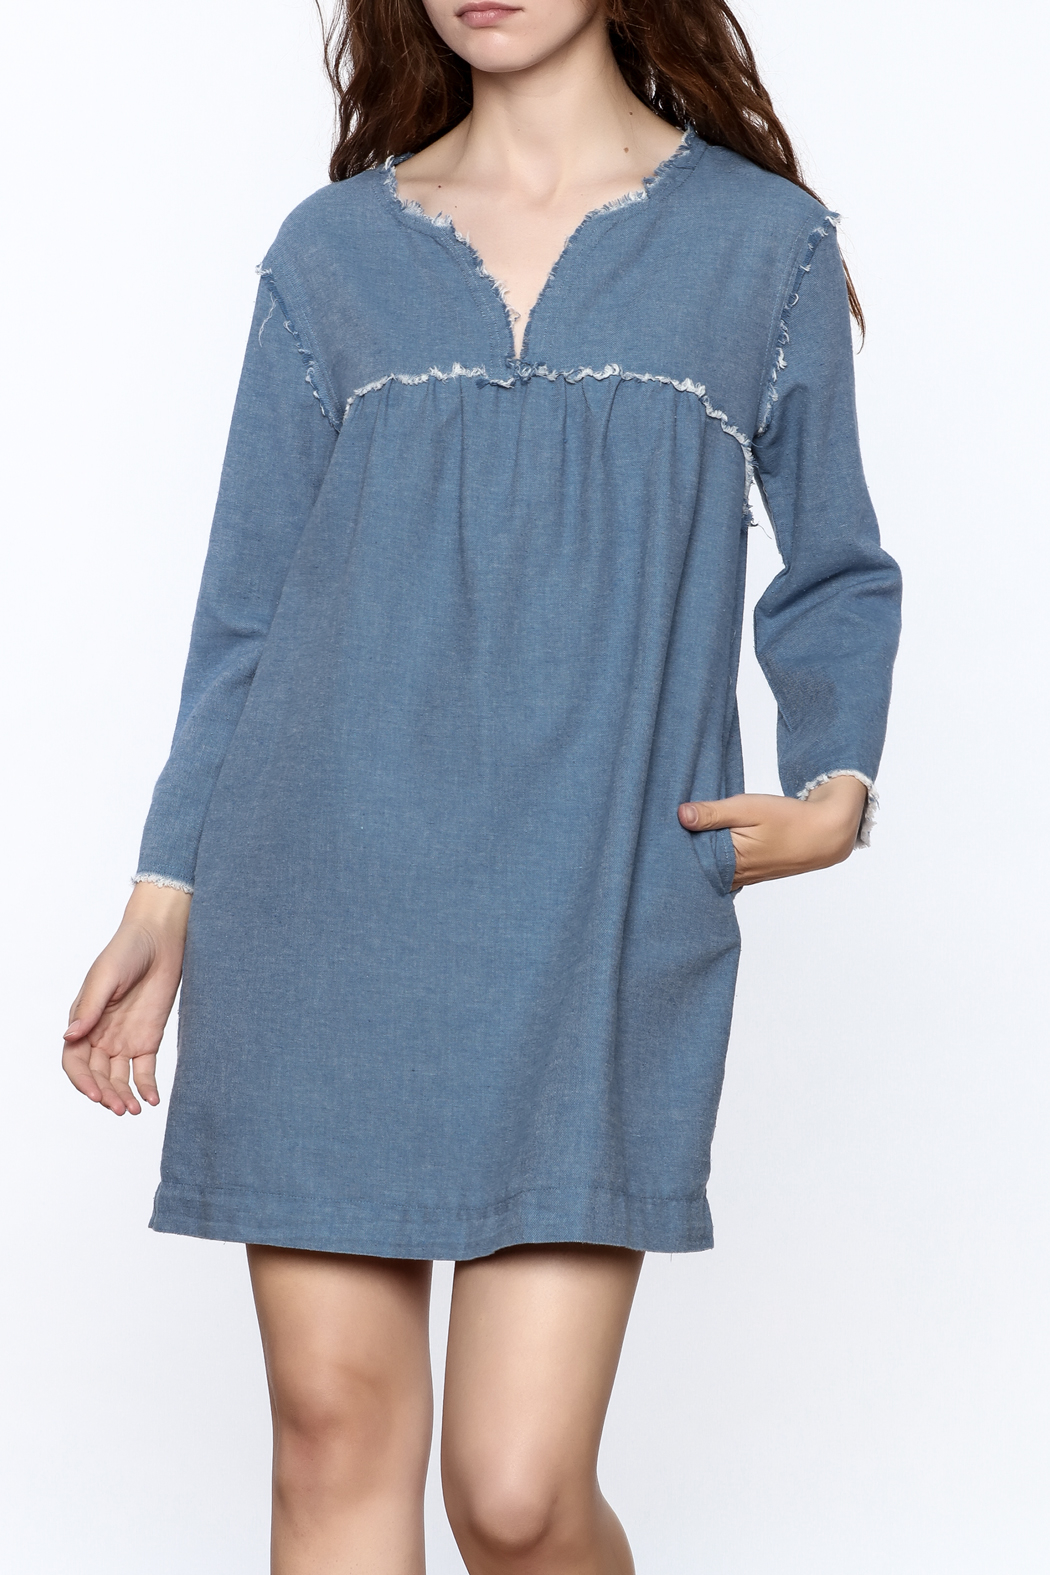 Ellison Frayed Denim Dress - Main Image